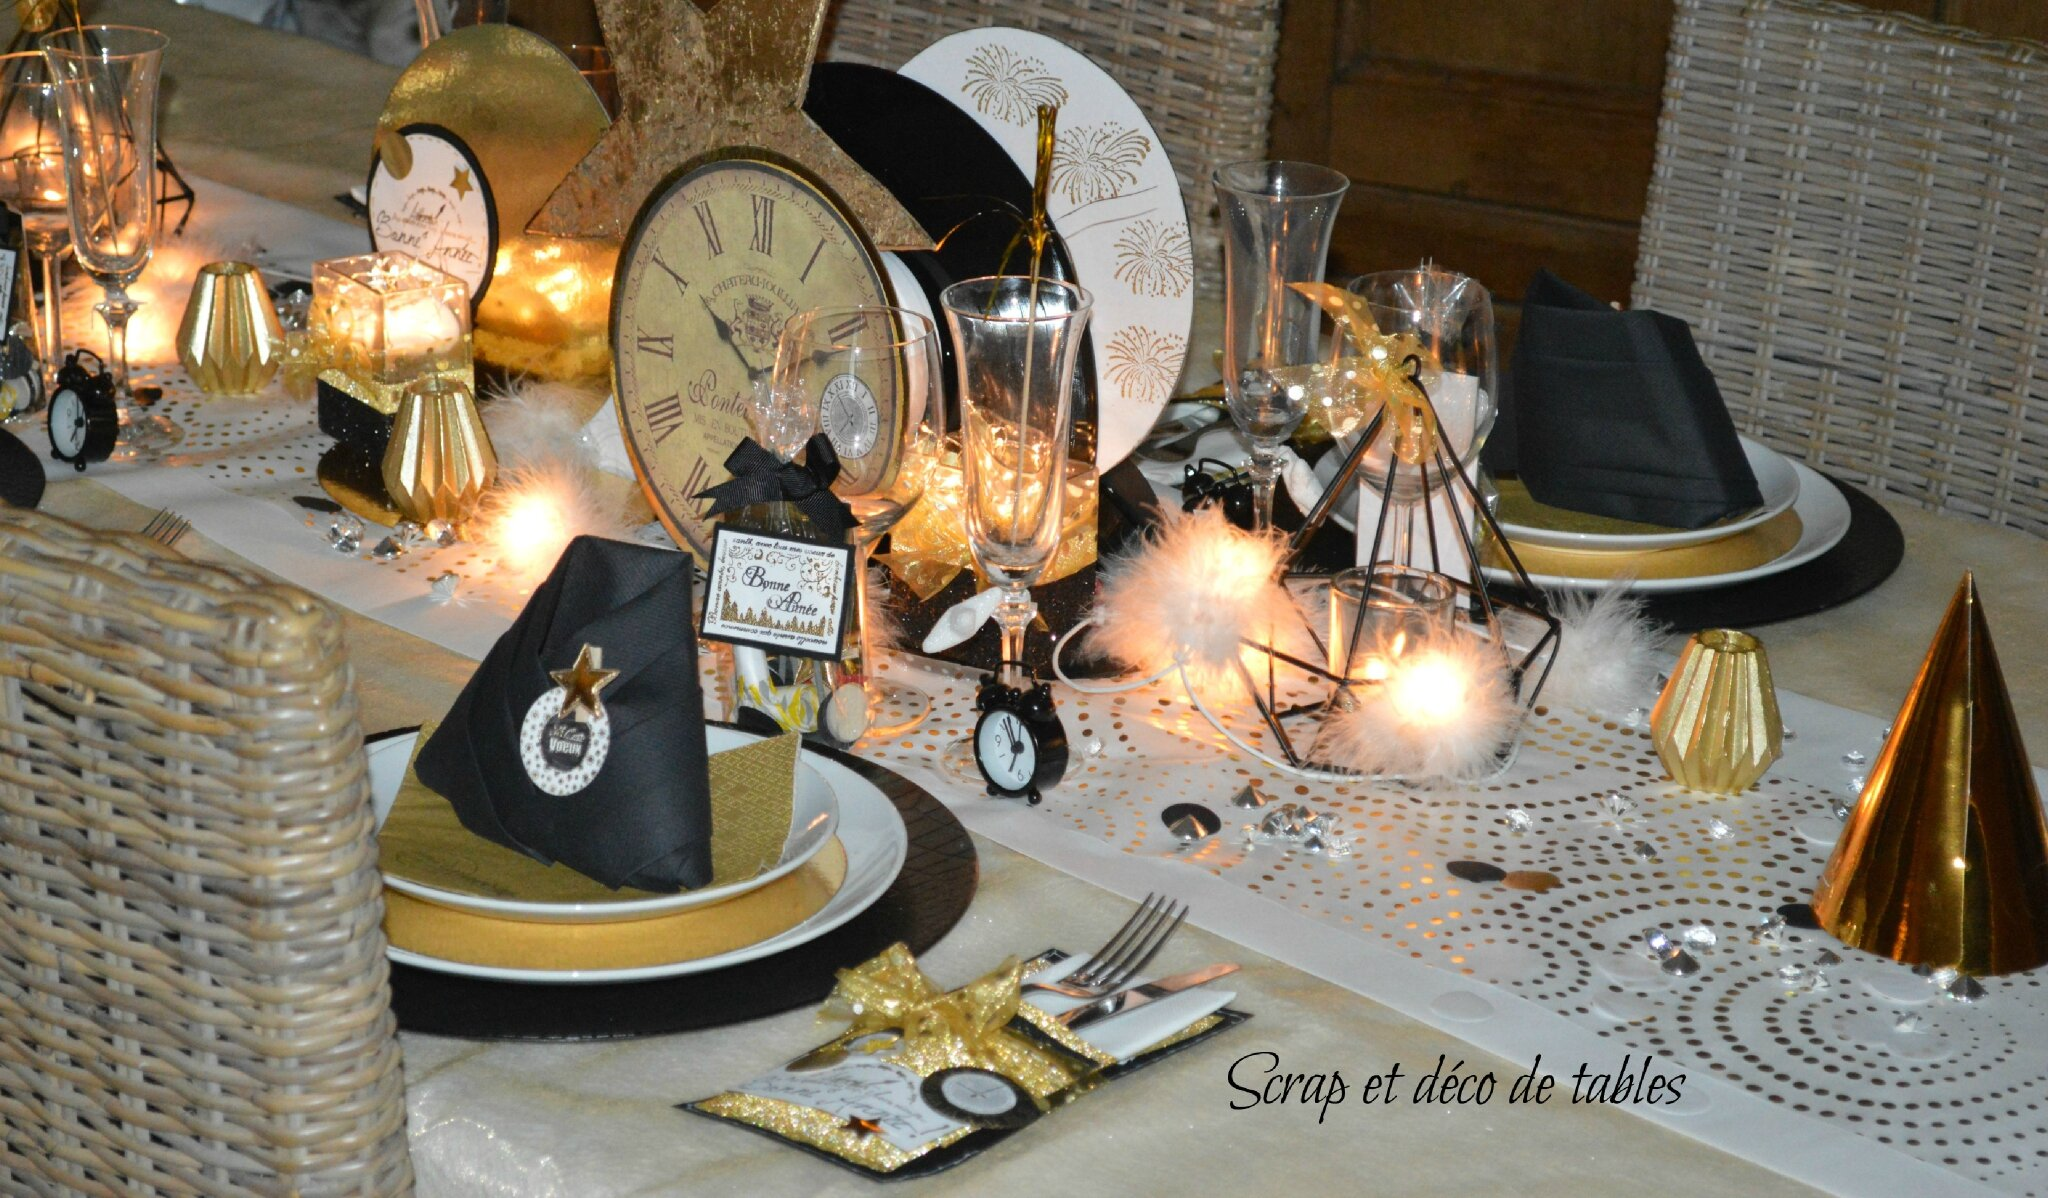 Deco de table nouvel an 2016 scrap et d co de tables - Deco table reveillon nouvel an ...